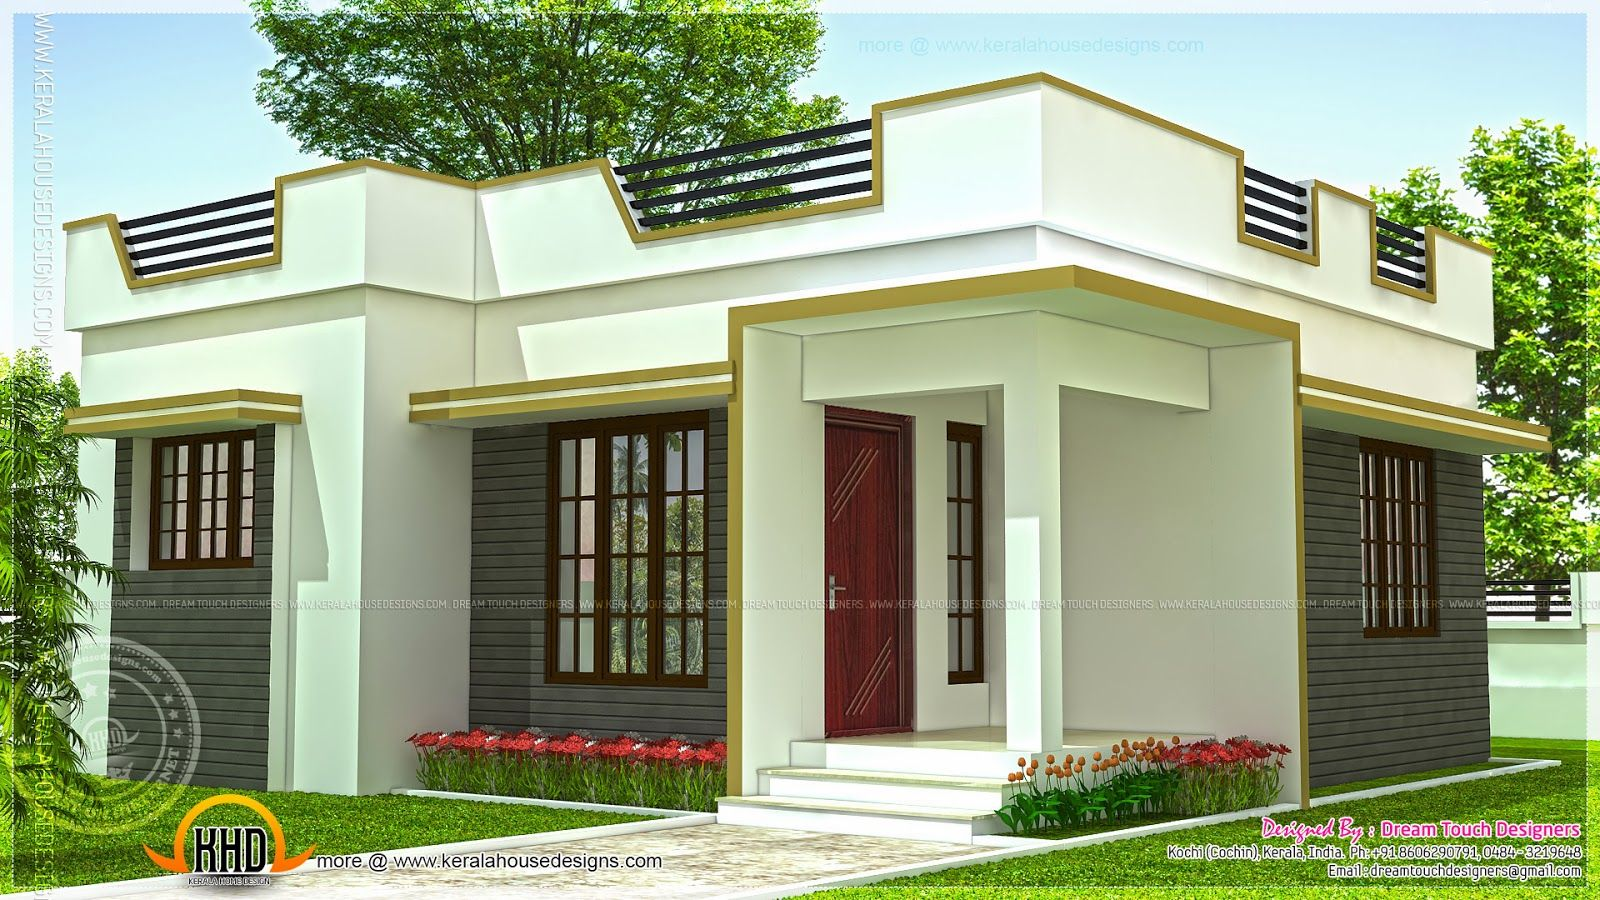 Lately 21 small house design kerala small house for Front design of small house